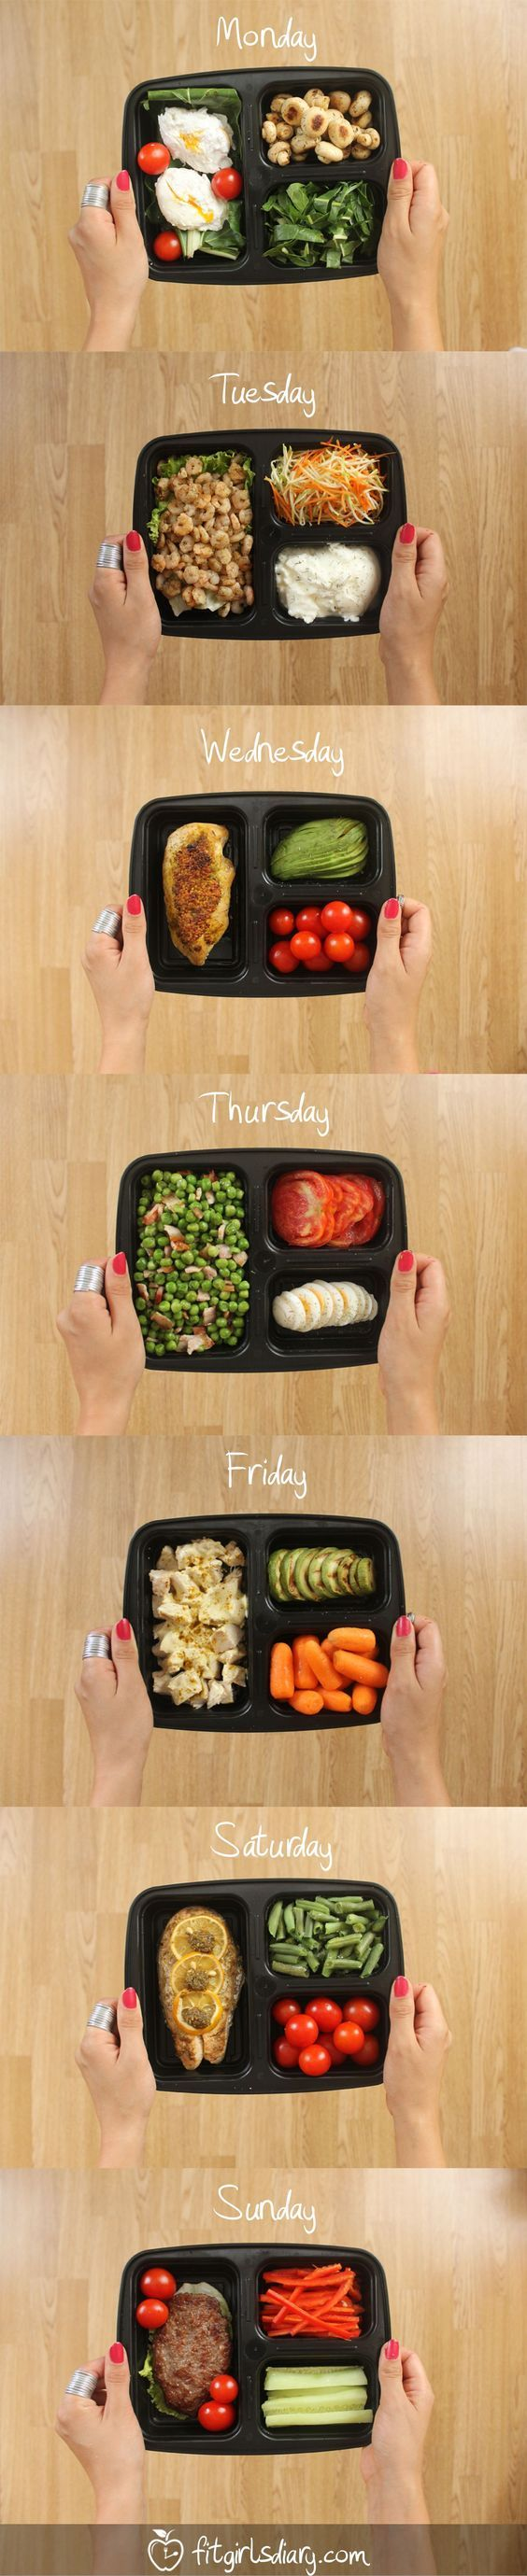 Food ideas for healthy eating - 7 Days Of Healthy Meal Prep Ideas Ready To Eat Meals And Protein